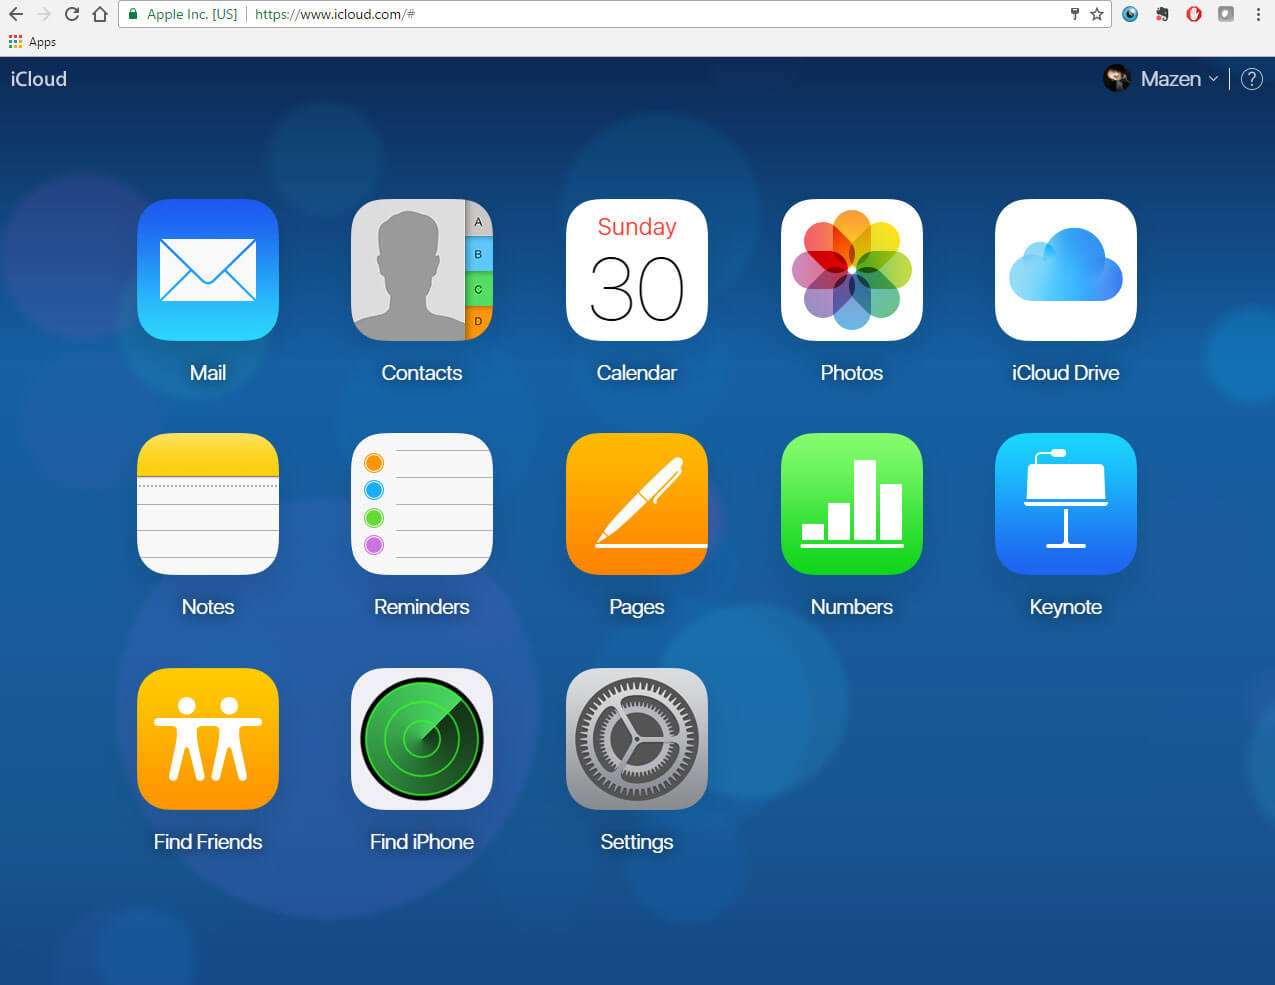 find iphone from icloud